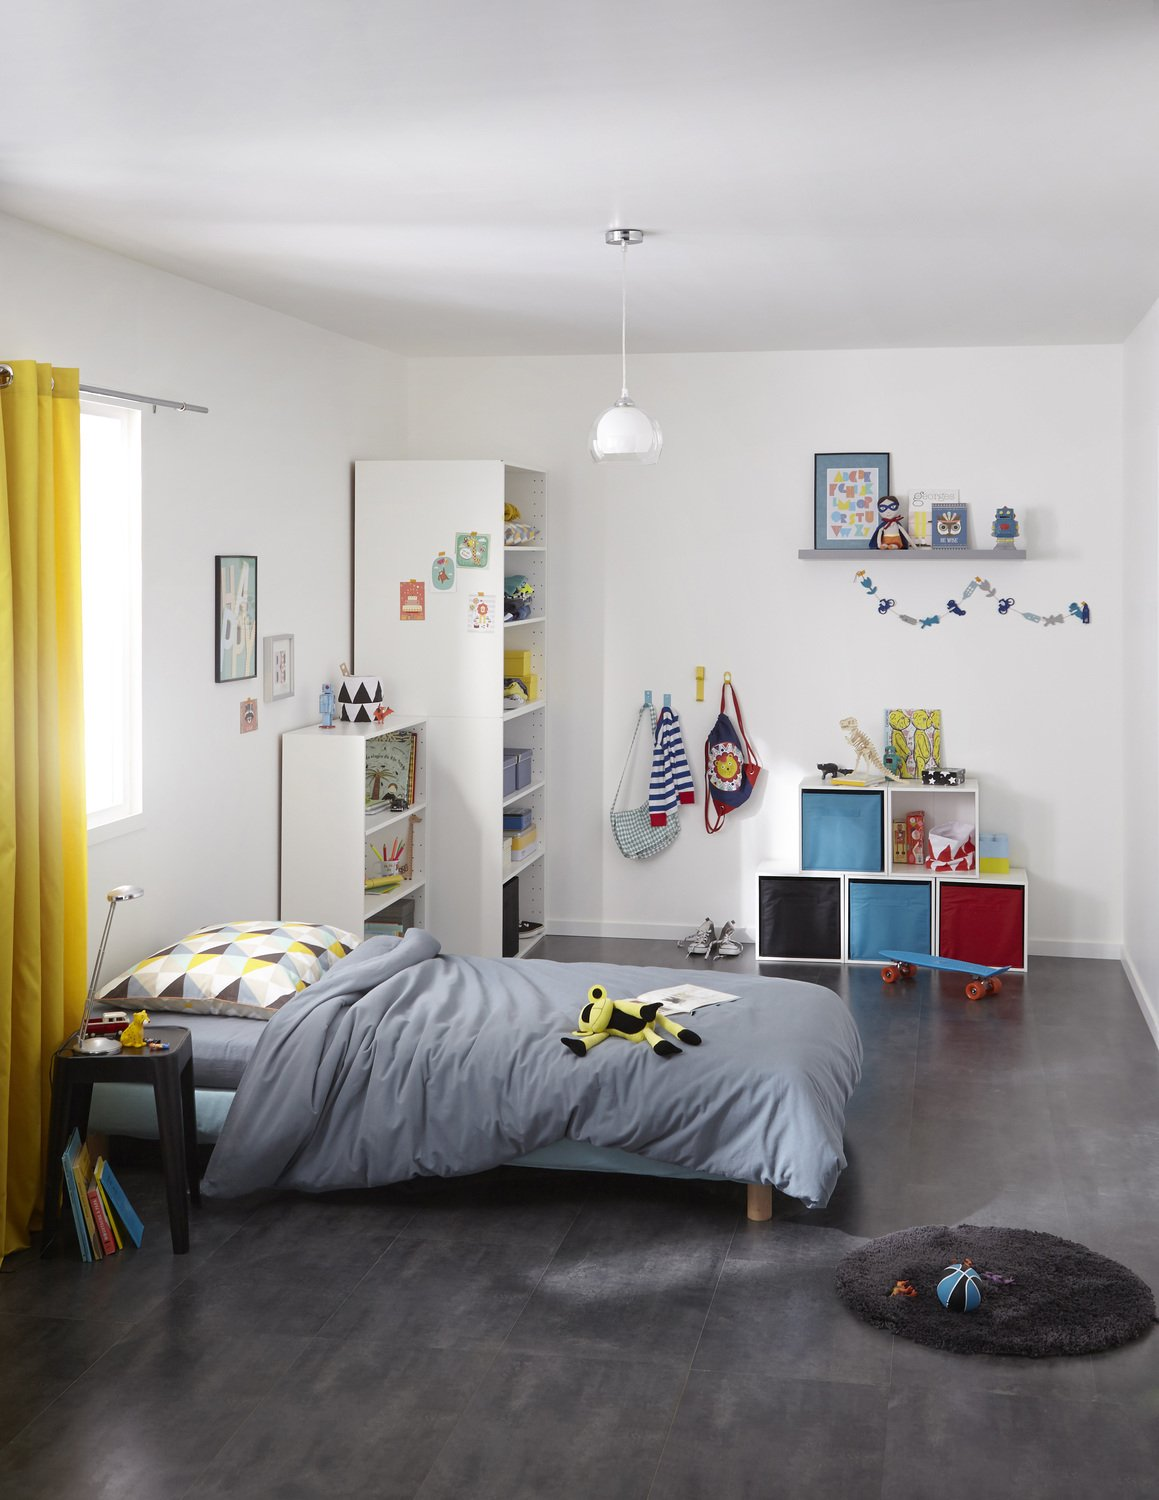 des caissons spaceo pour construire un meuble de rangement leroy merlin. Black Bedroom Furniture Sets. Home Design Ideas